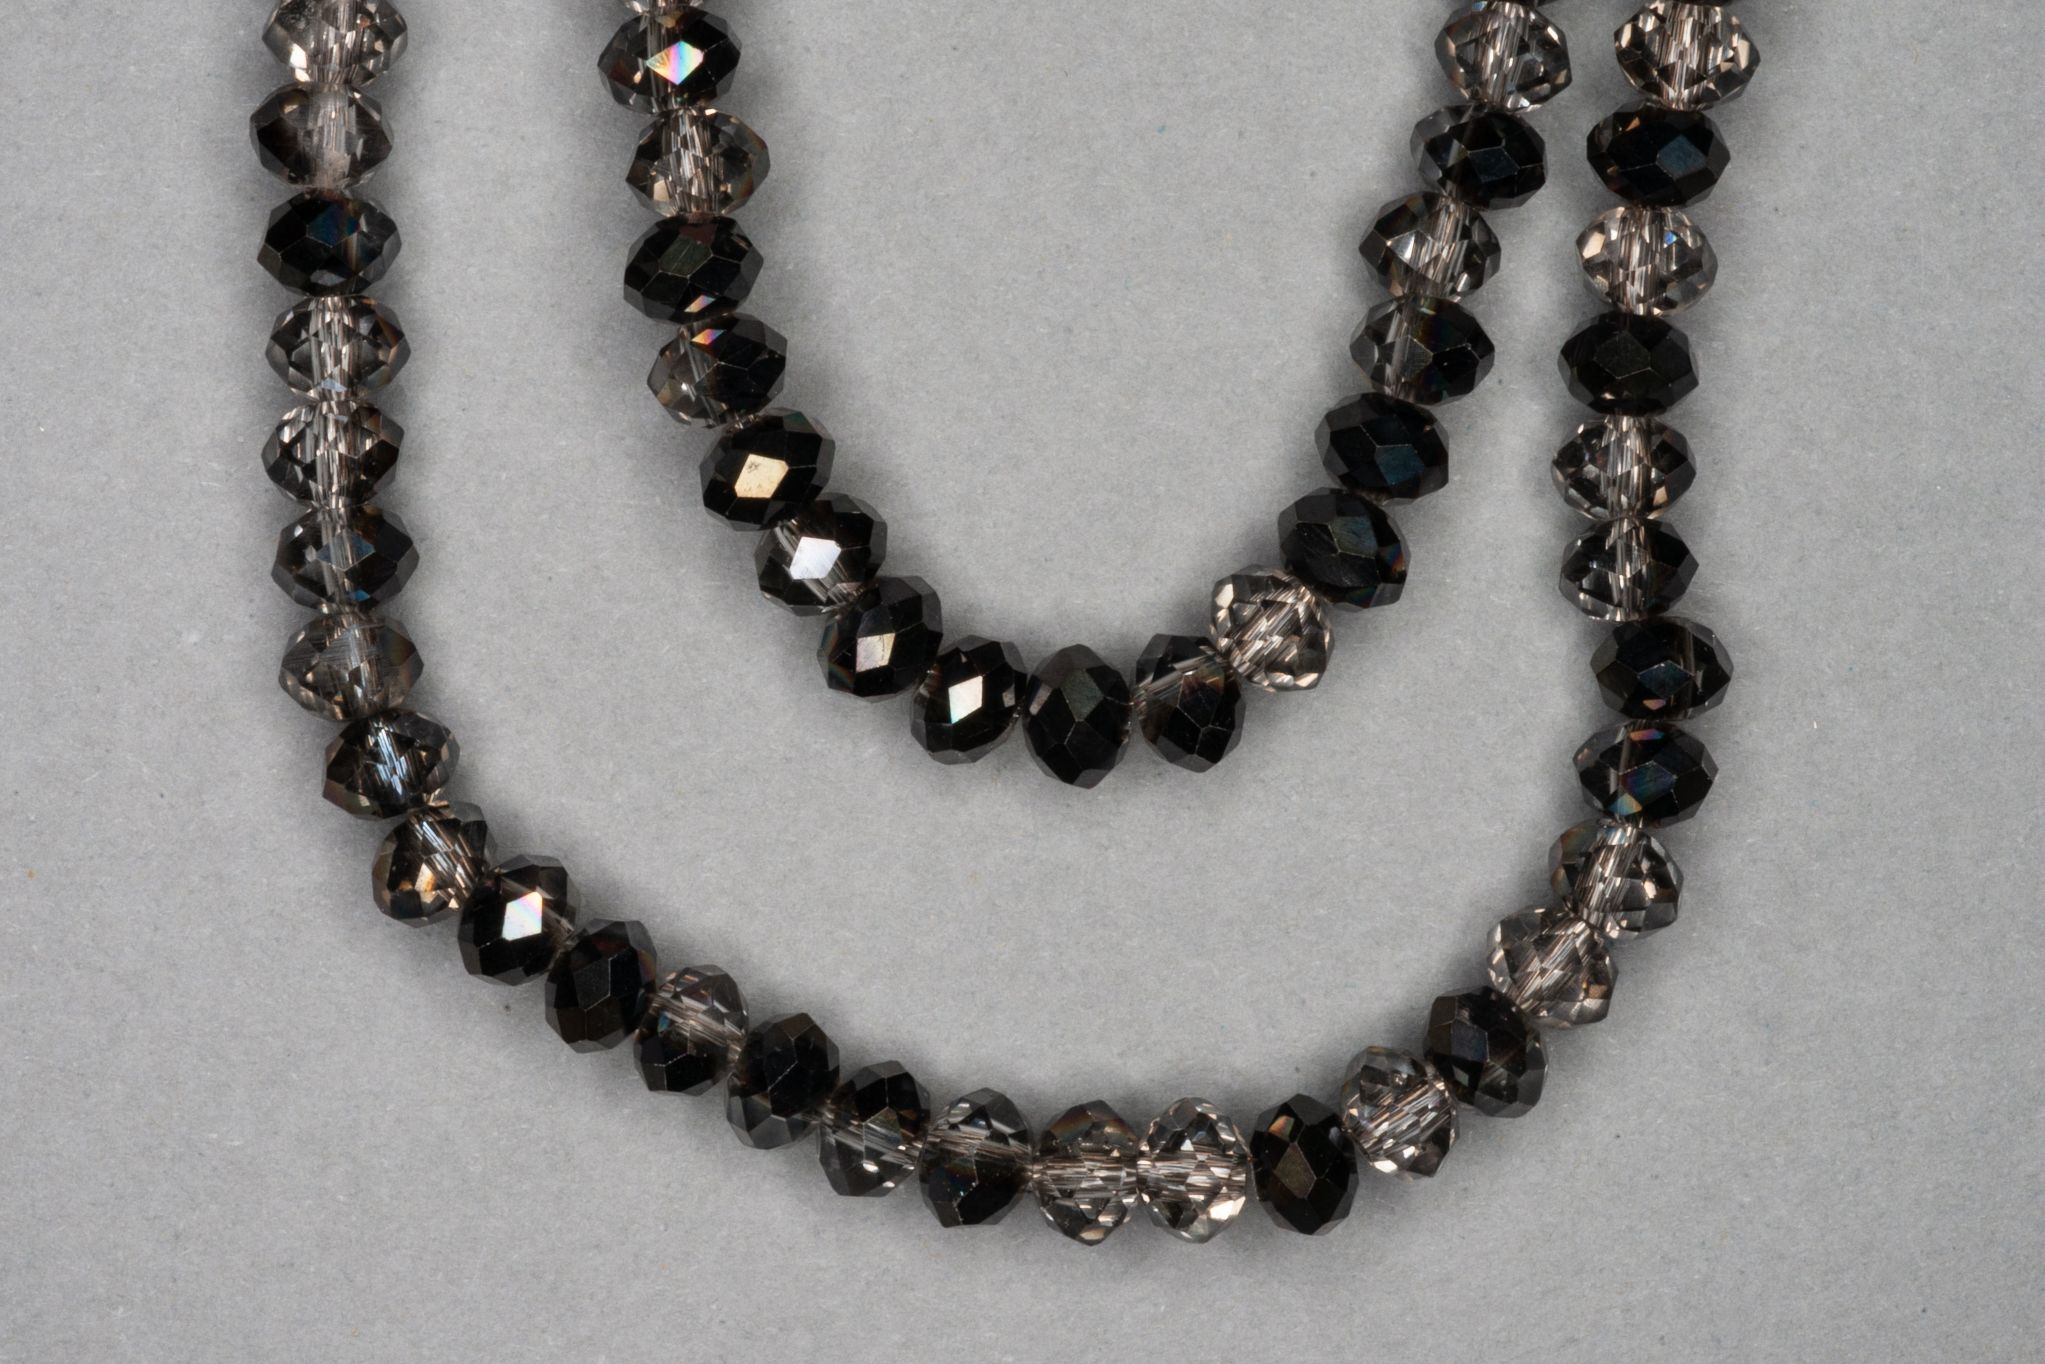 Graphite/Grey Faceted Glass Beads